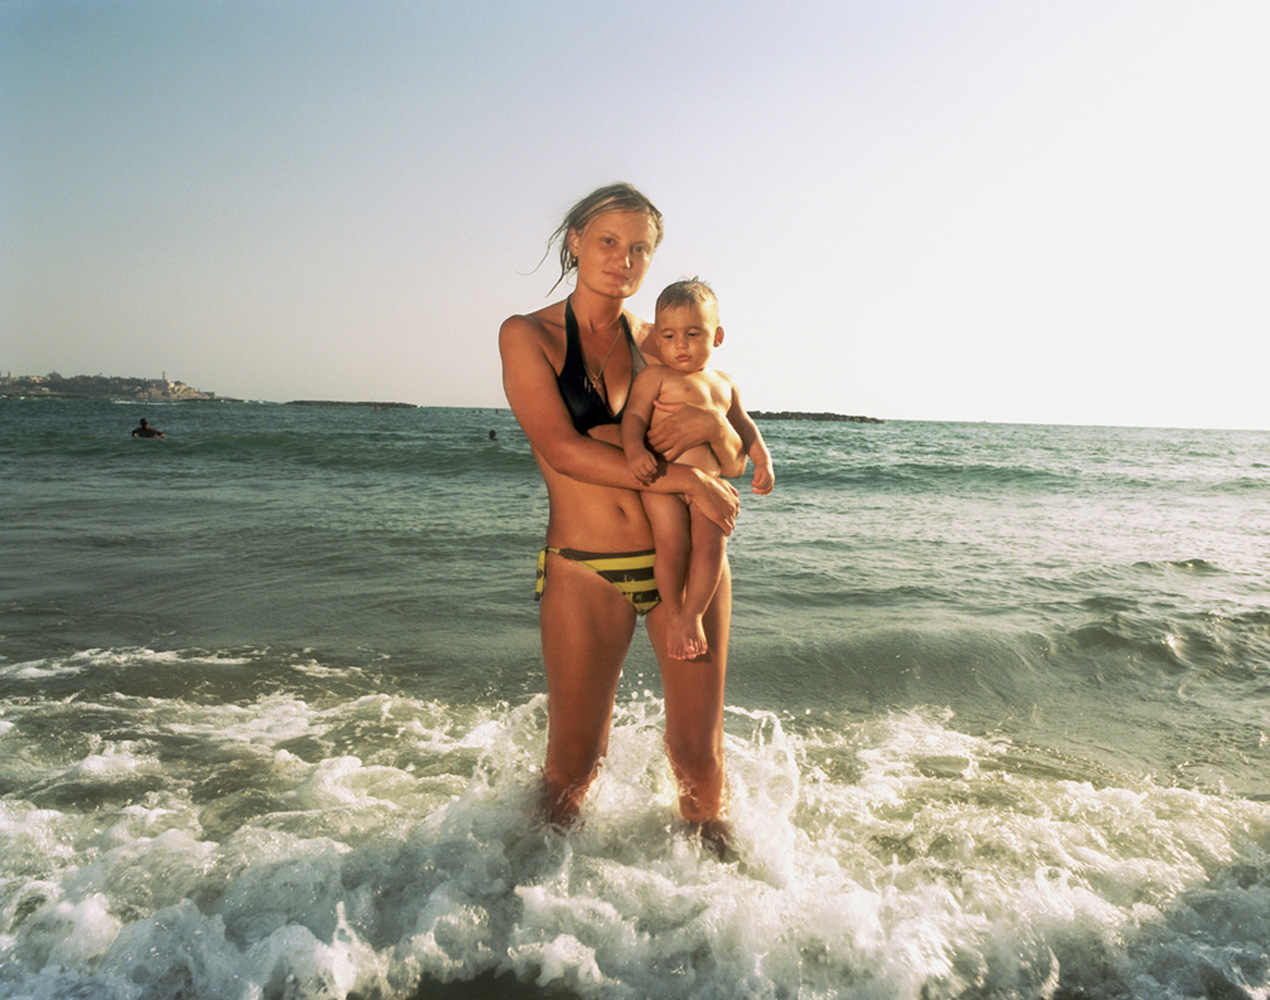 Elana with her son, whose favorite part of going to the beach is dipping his feet in the water.